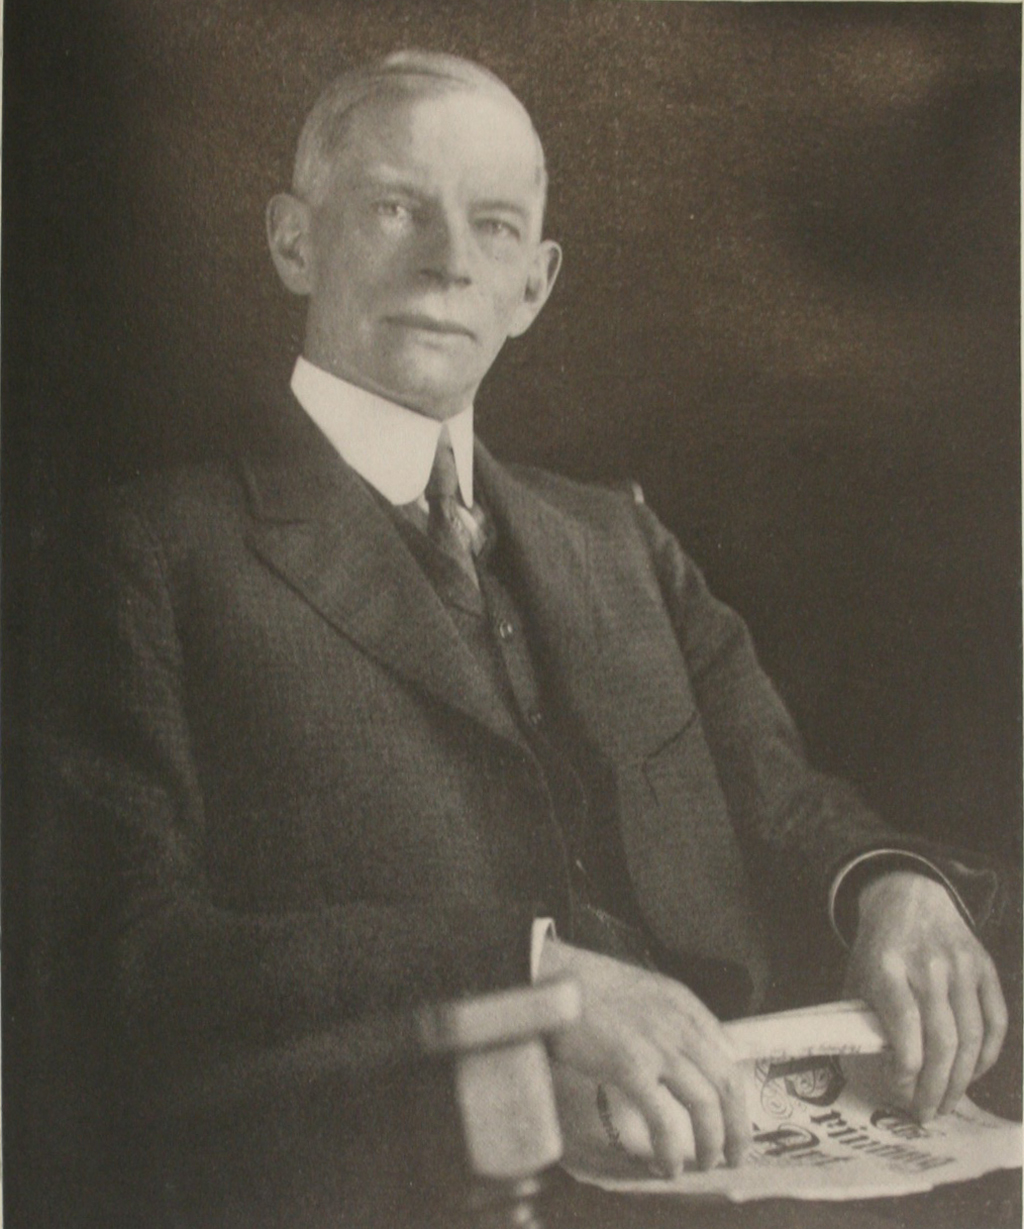 C.F. Whitmarsh. Photograph by Charles E. Davis. Date unknown, but probably between 1910 and 1914.